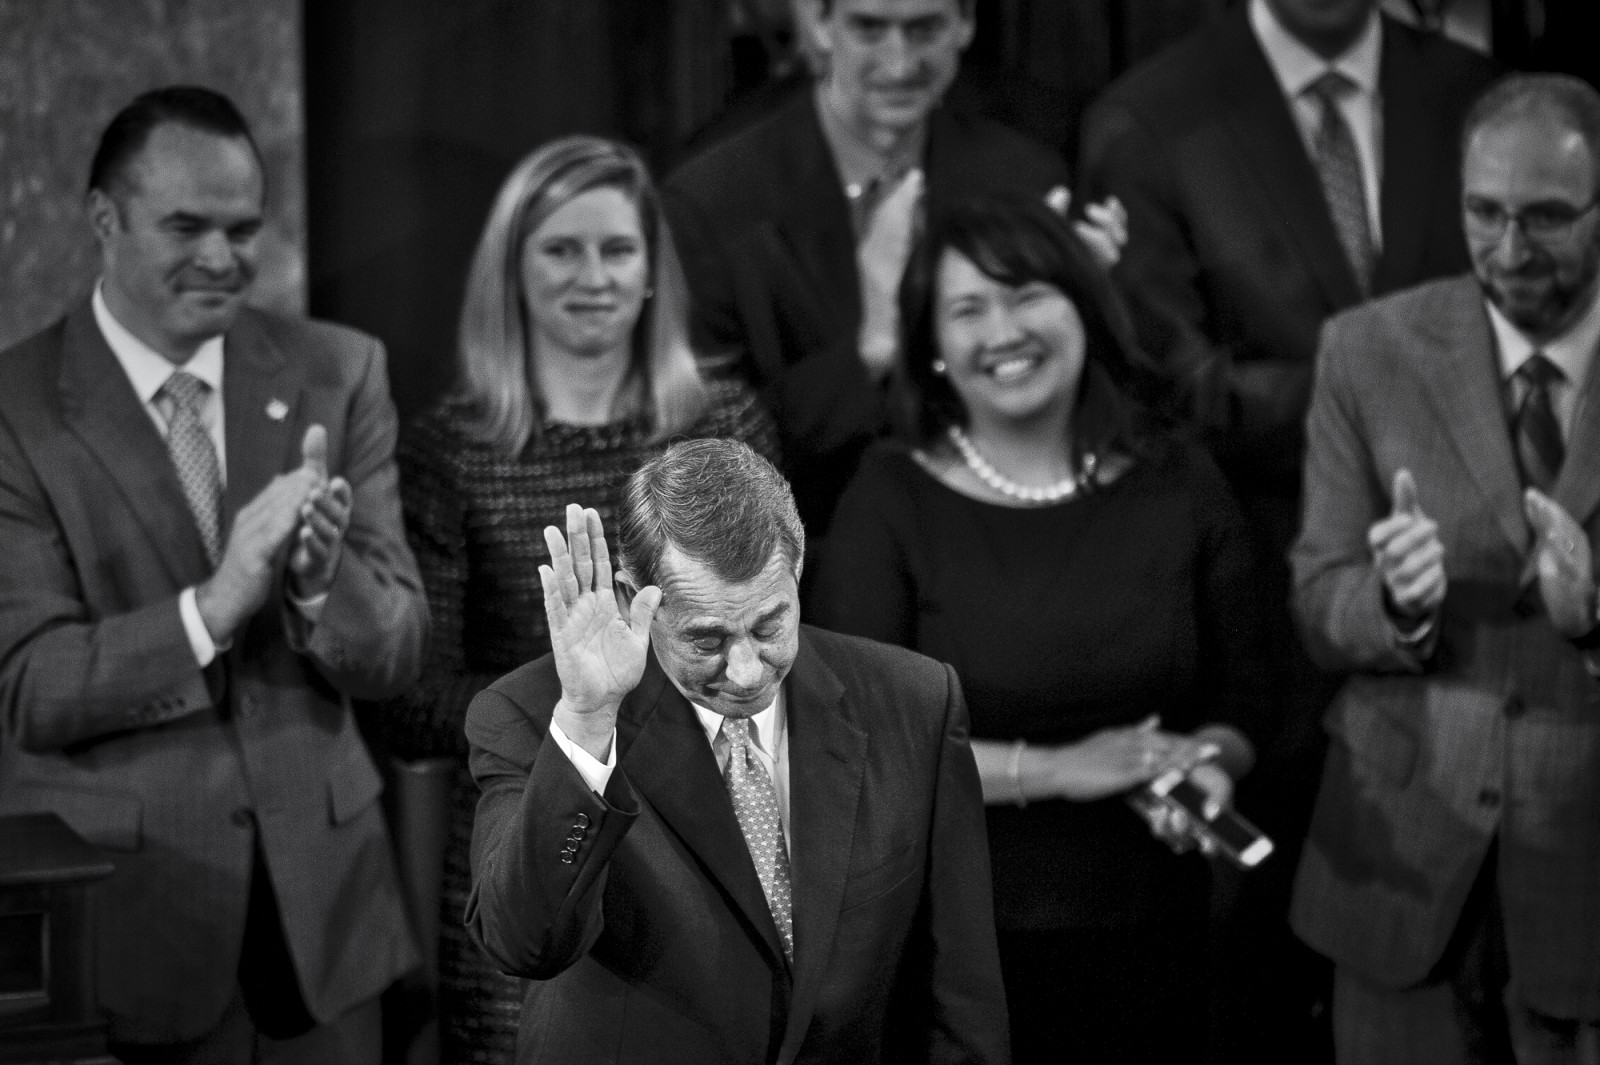 Speaker of the House John Boehner (R-OH) salutes the Chamber after delivering his farewell address to the House of Representatives on October 29, 2015 in Washington, D.C. Following his address, the House of Representatives will vote on Boehner's replacement for Speaker. Photo by Pete Marovich/UPI